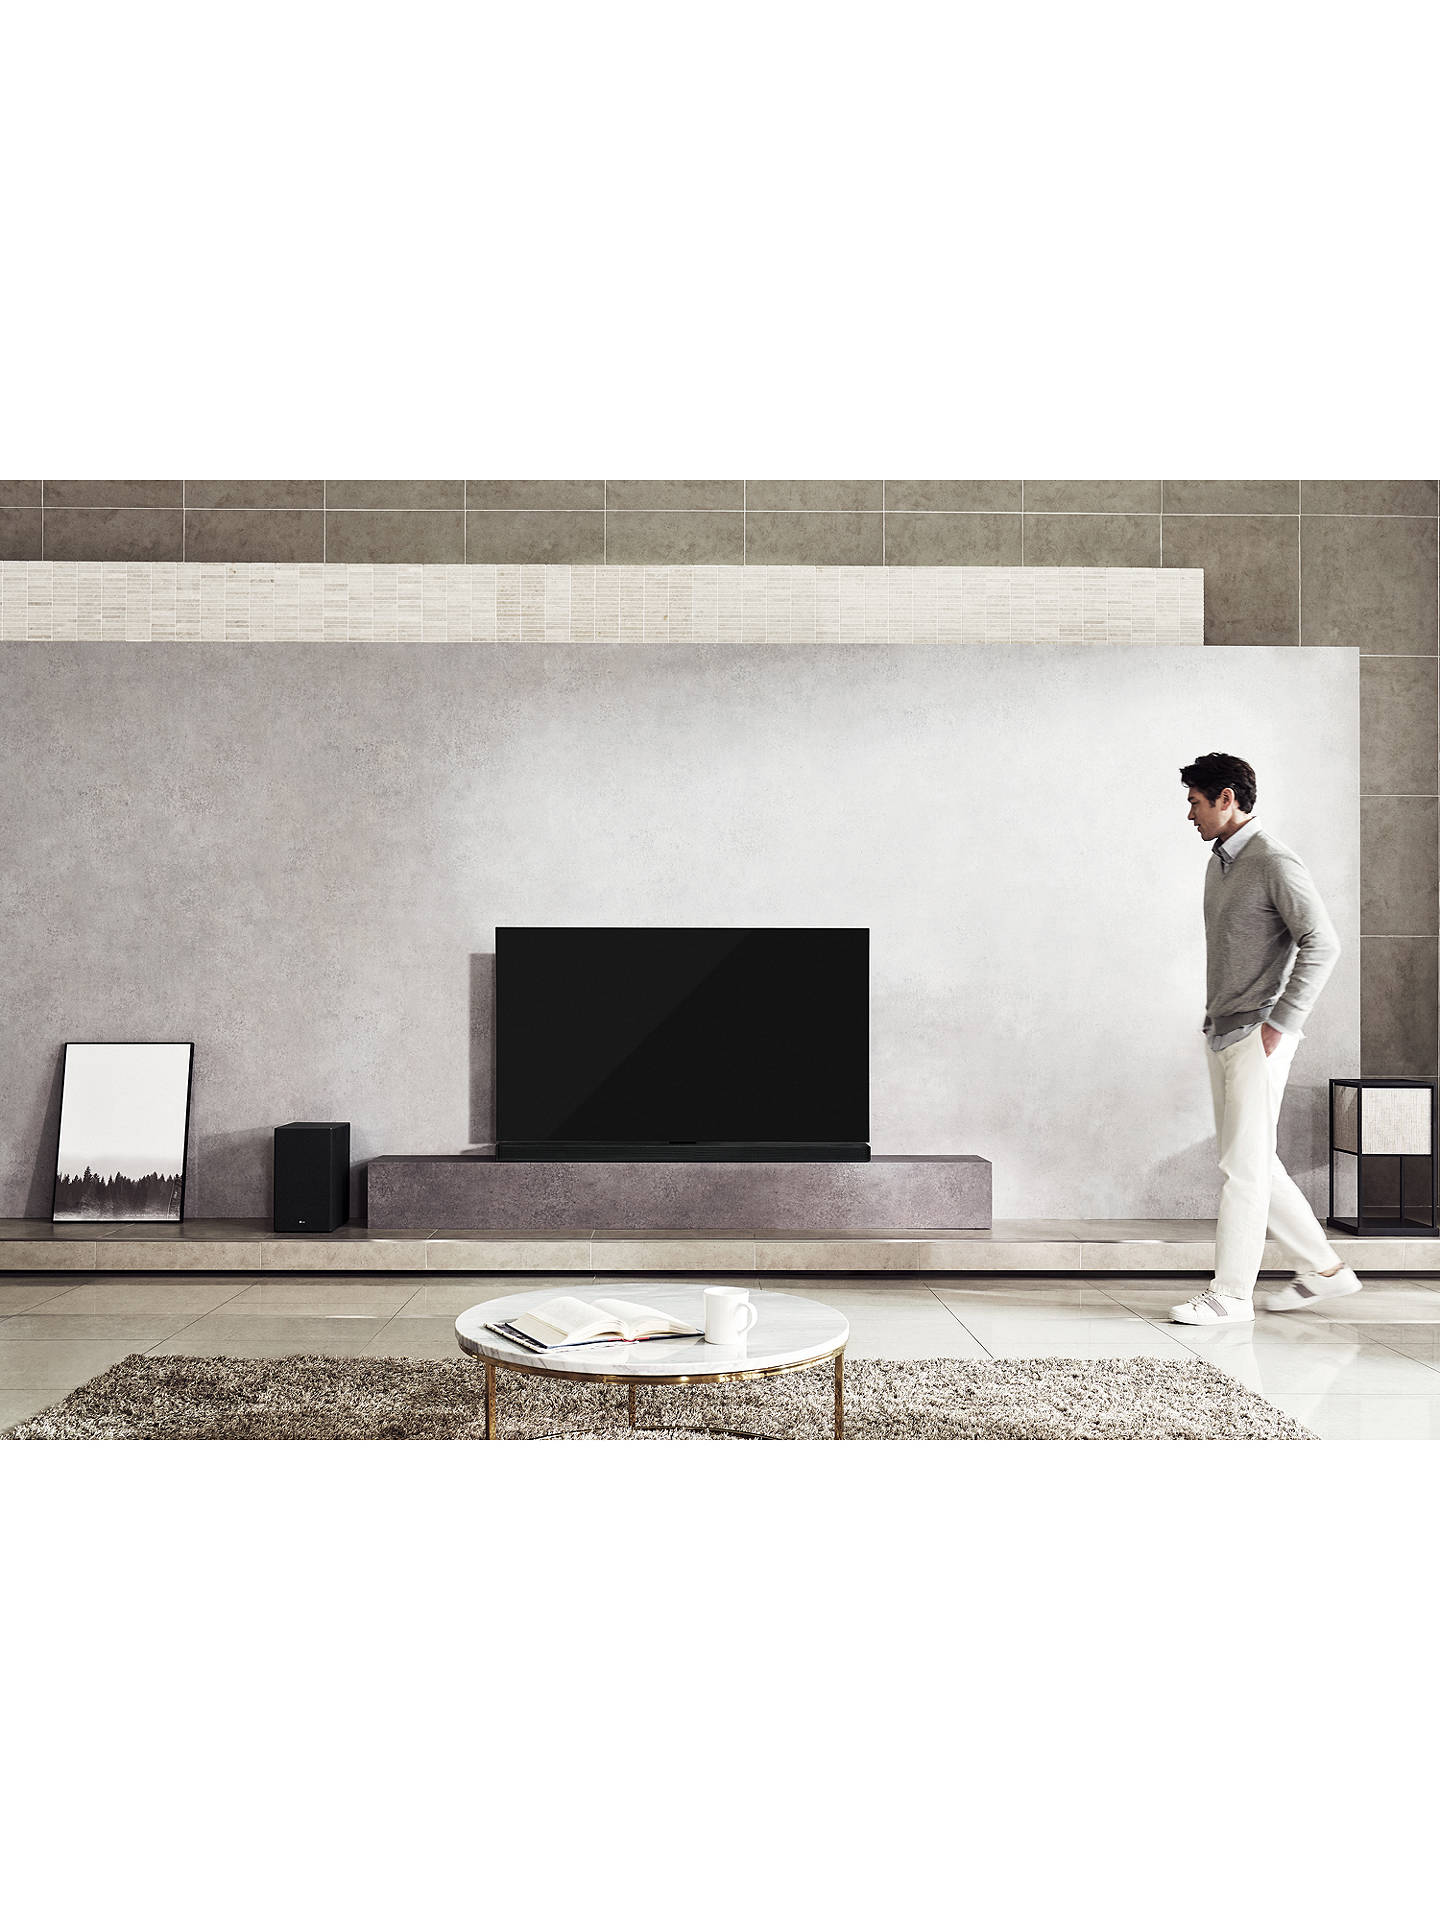 BuyLG SK10Y Wi-Fi Bluetooth Sound Bar with Wireless Subwoofer, Meridian Technology, Dolby Atmos, High Resolution Audio & Chromecast Built-in, Black Online at johnlewis.com